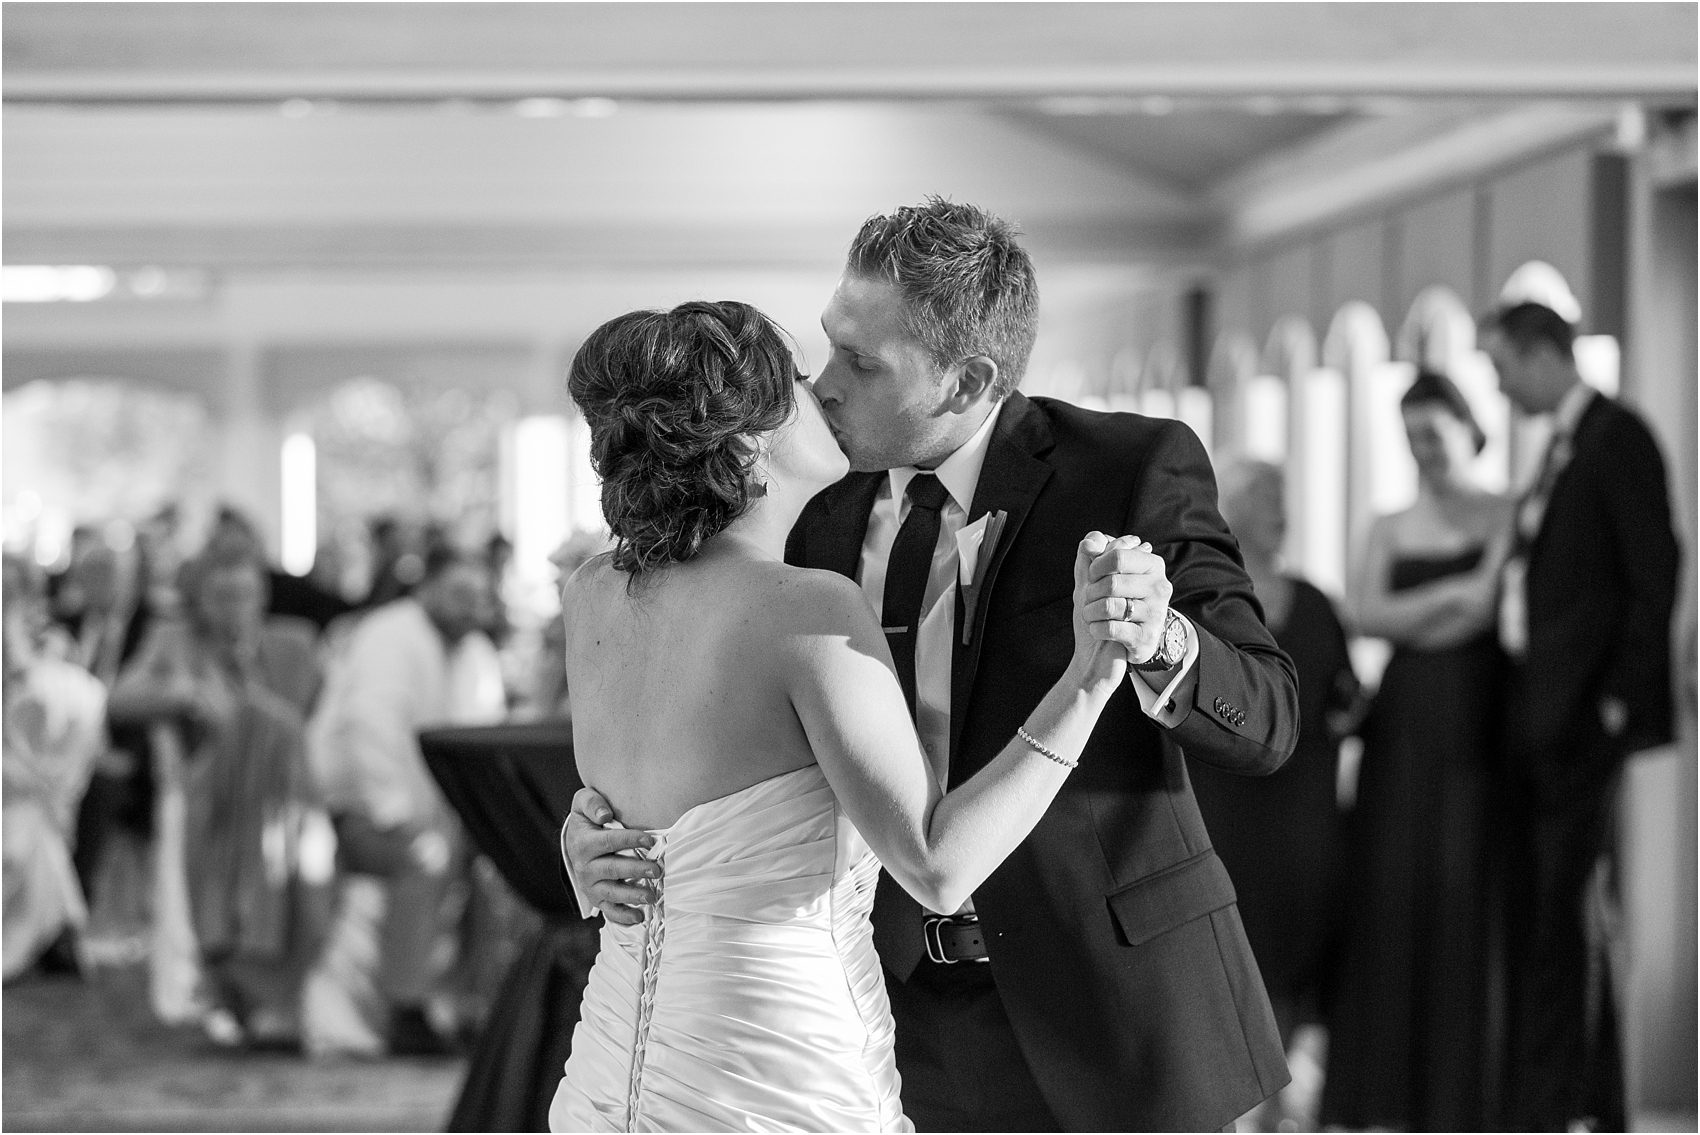 classic-wedding-photos-at-great-oaks-country-club-in-rochester-hills-mi-by-courtney-carolyn-photography_0107.jpg